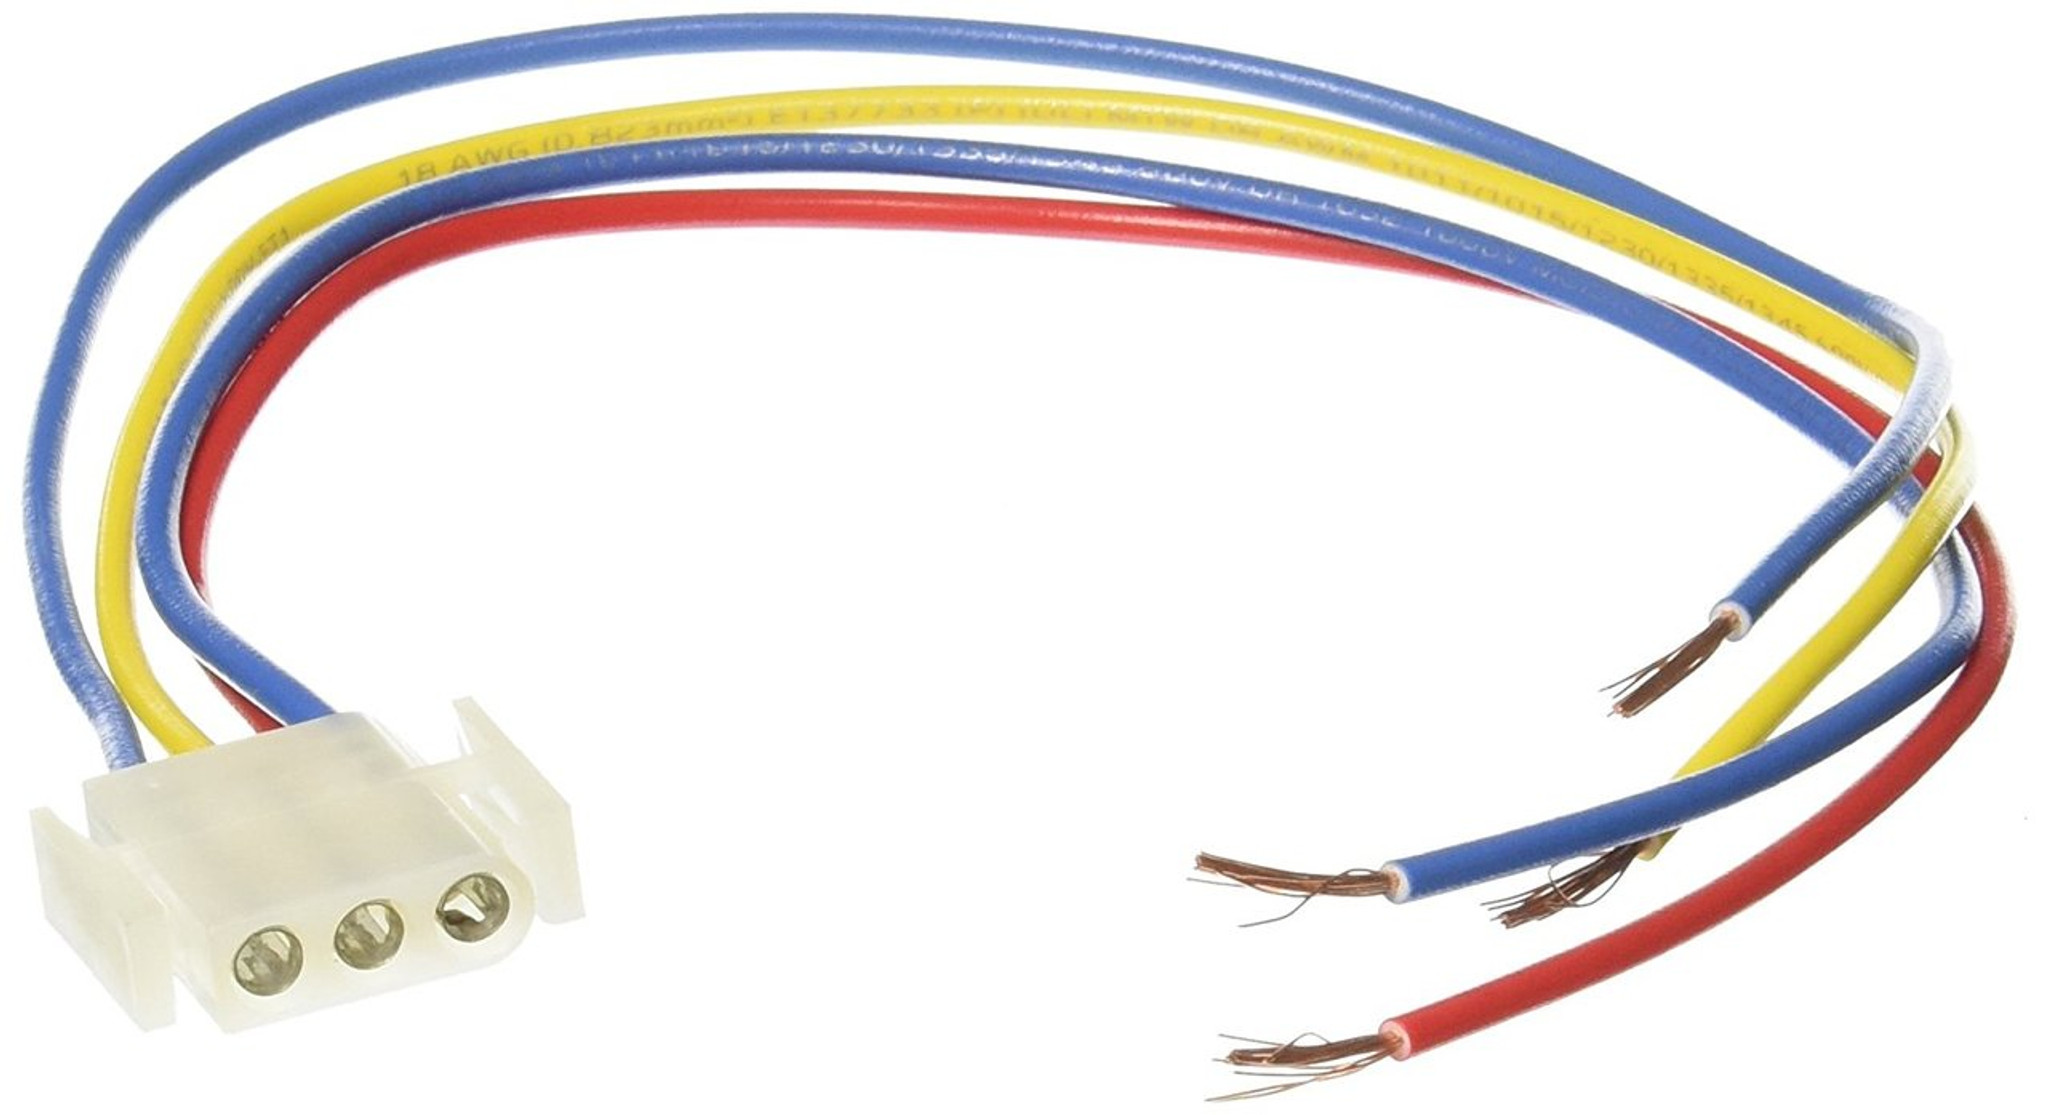 hight resolution of suburban furnace power supply wire harness 520322 3 pin female suburban rv furnace wiring harness